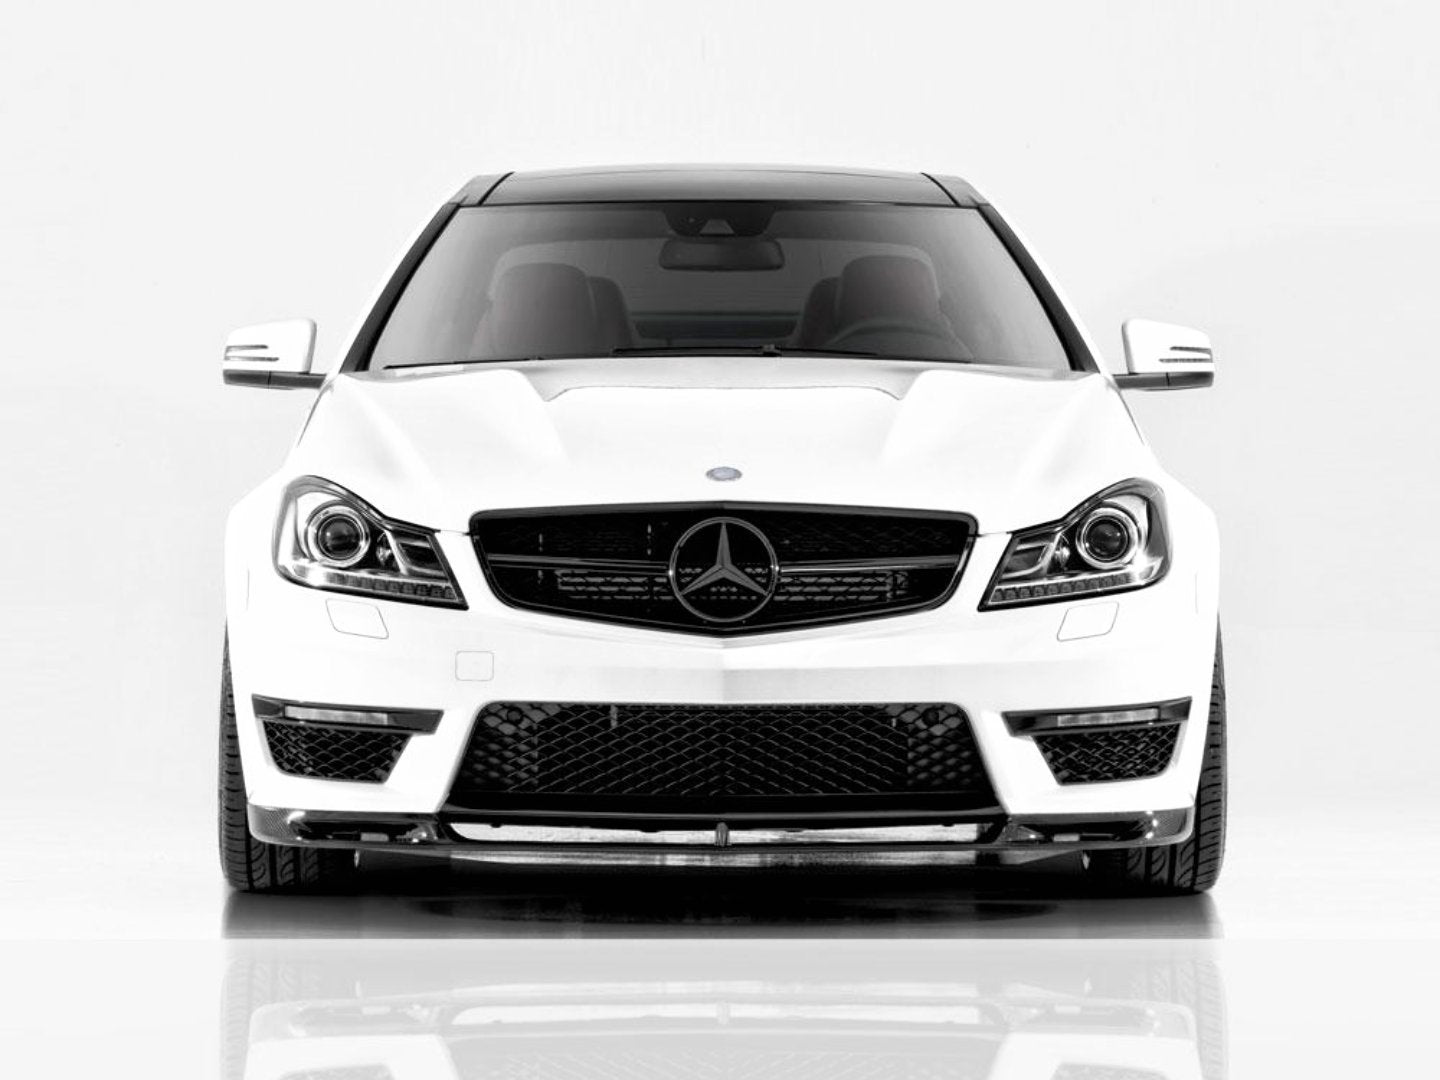 VRS STYLE FRONT LIP -  - Yomato Carbon - Montreal Canada